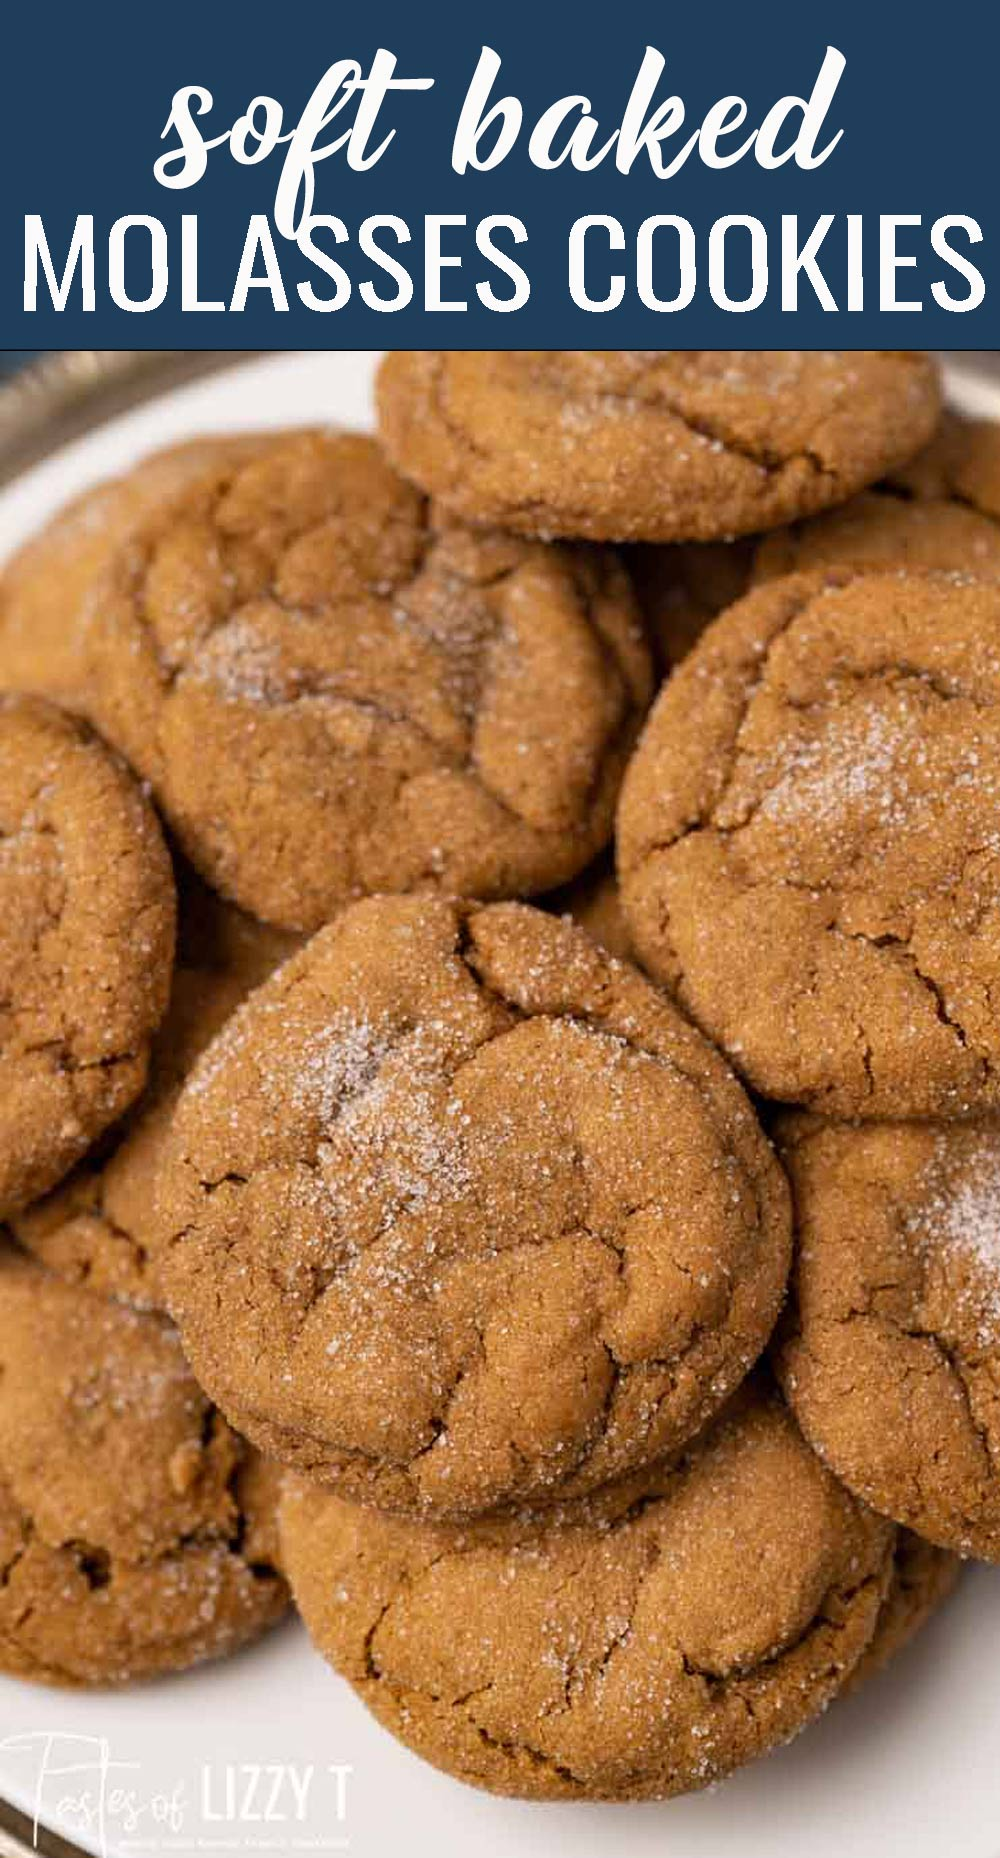 Molasses Cookies Recipe Soft Baked Ginger Christmas Cookies